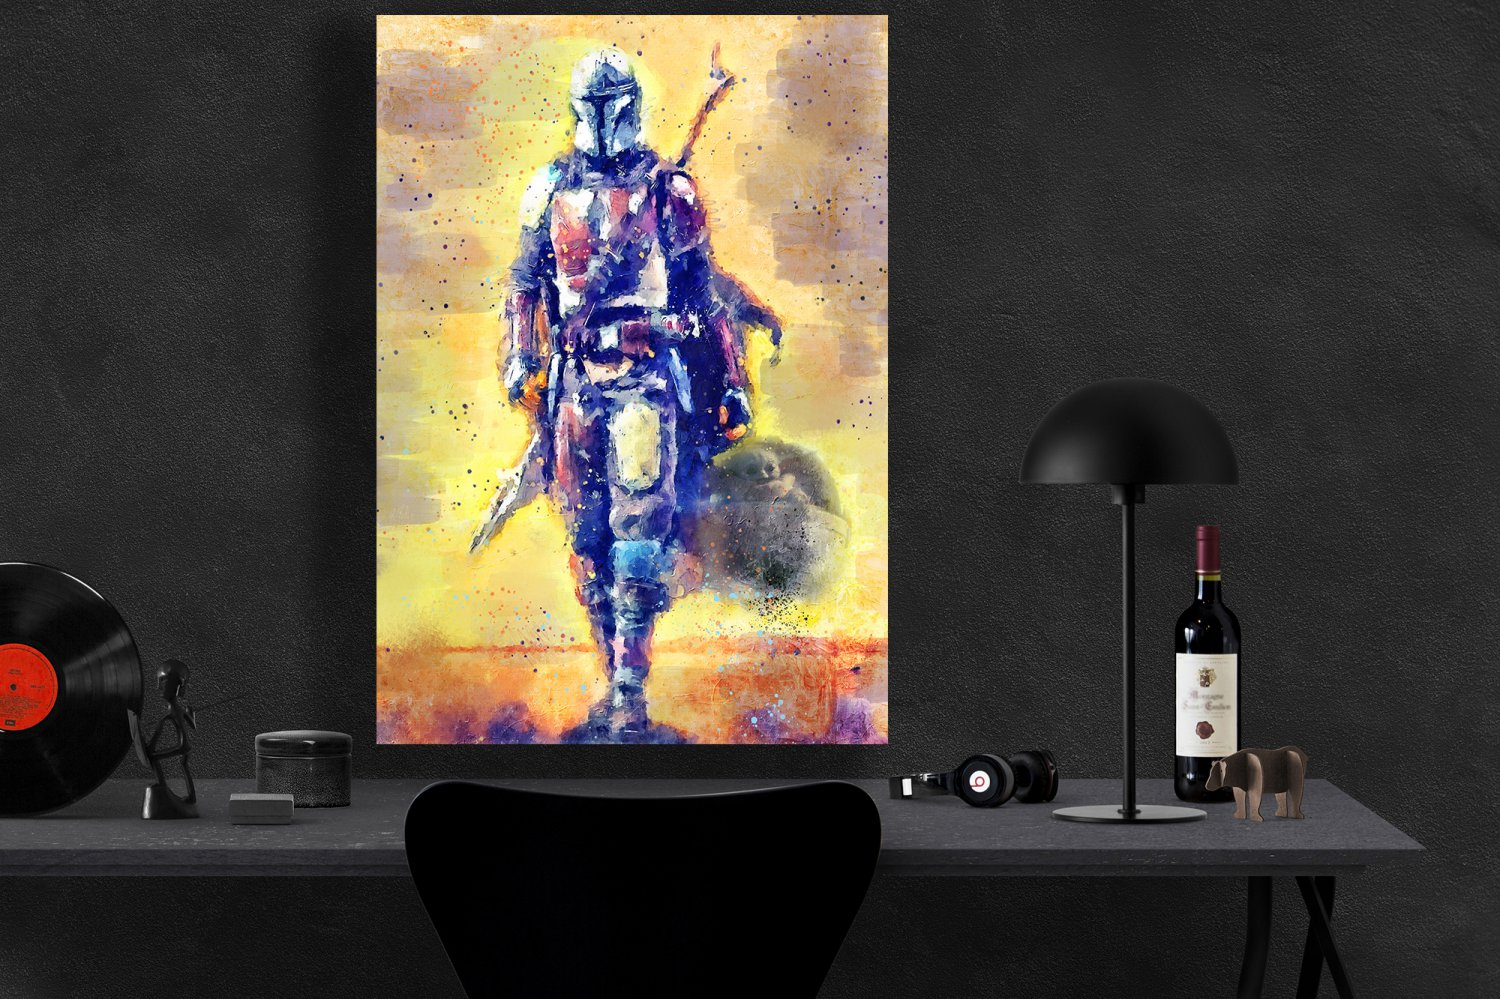 The Mandalorian, Star Wars, Pedro Pascal  24x35 inches Canvas Print